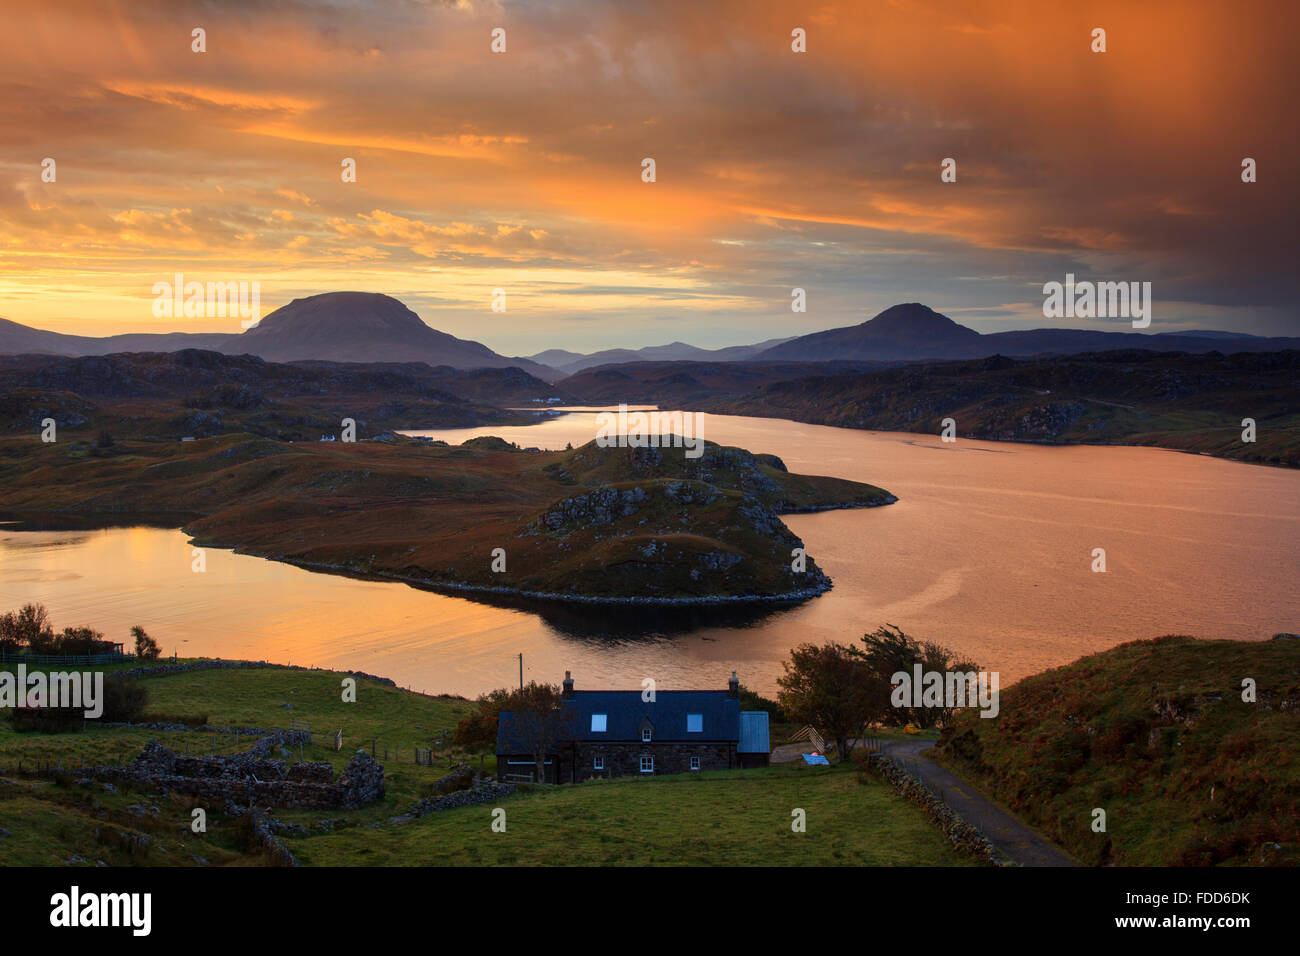 Loch Inchard near Kinlochbervie in the North West Highlands of Scotland captured at sunrise. - Stock Image